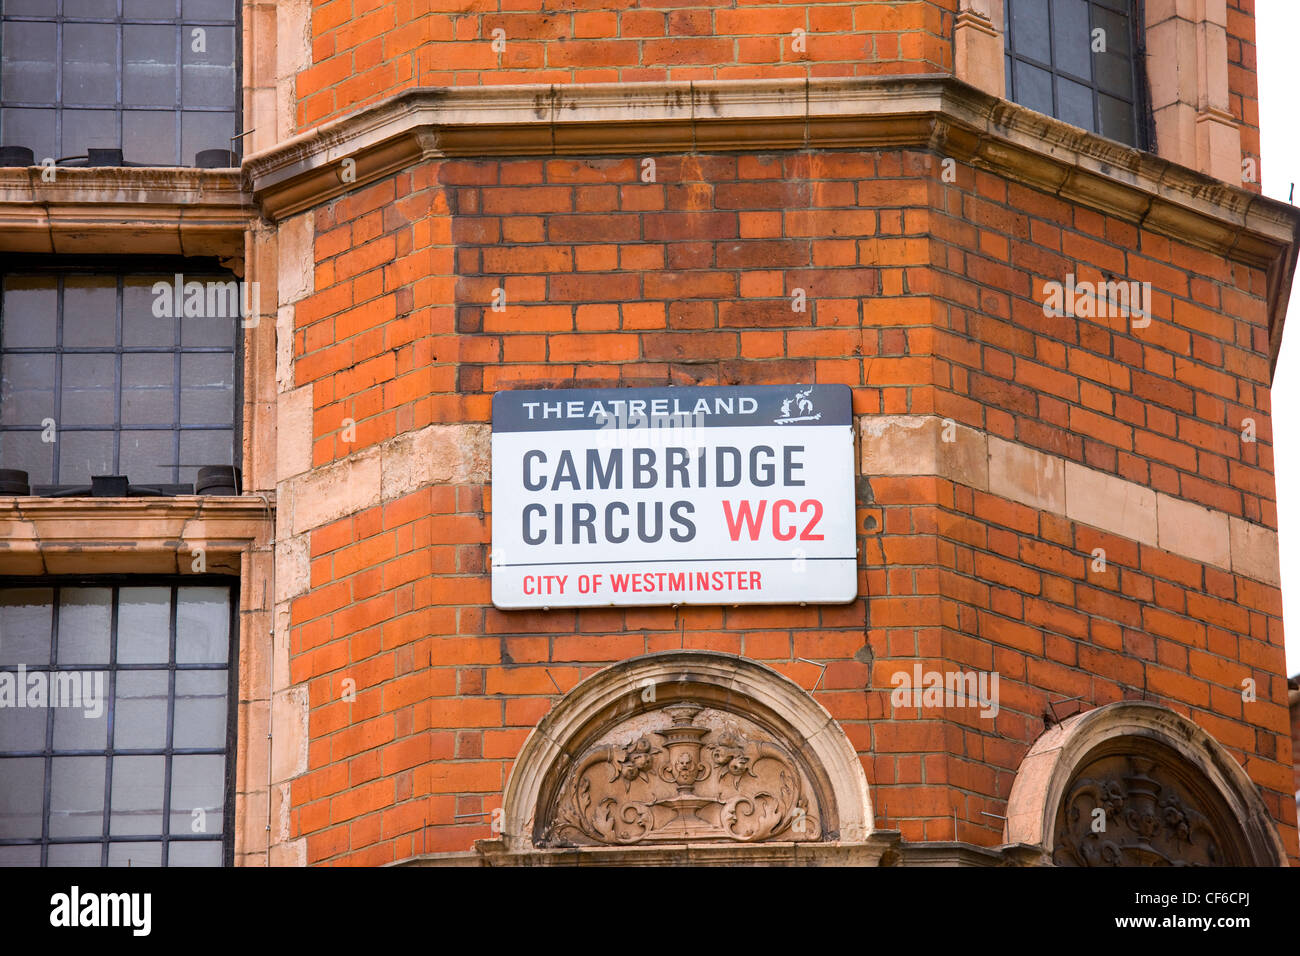 Cambridge Circus street sign with Theatreland written above. - Stock Image